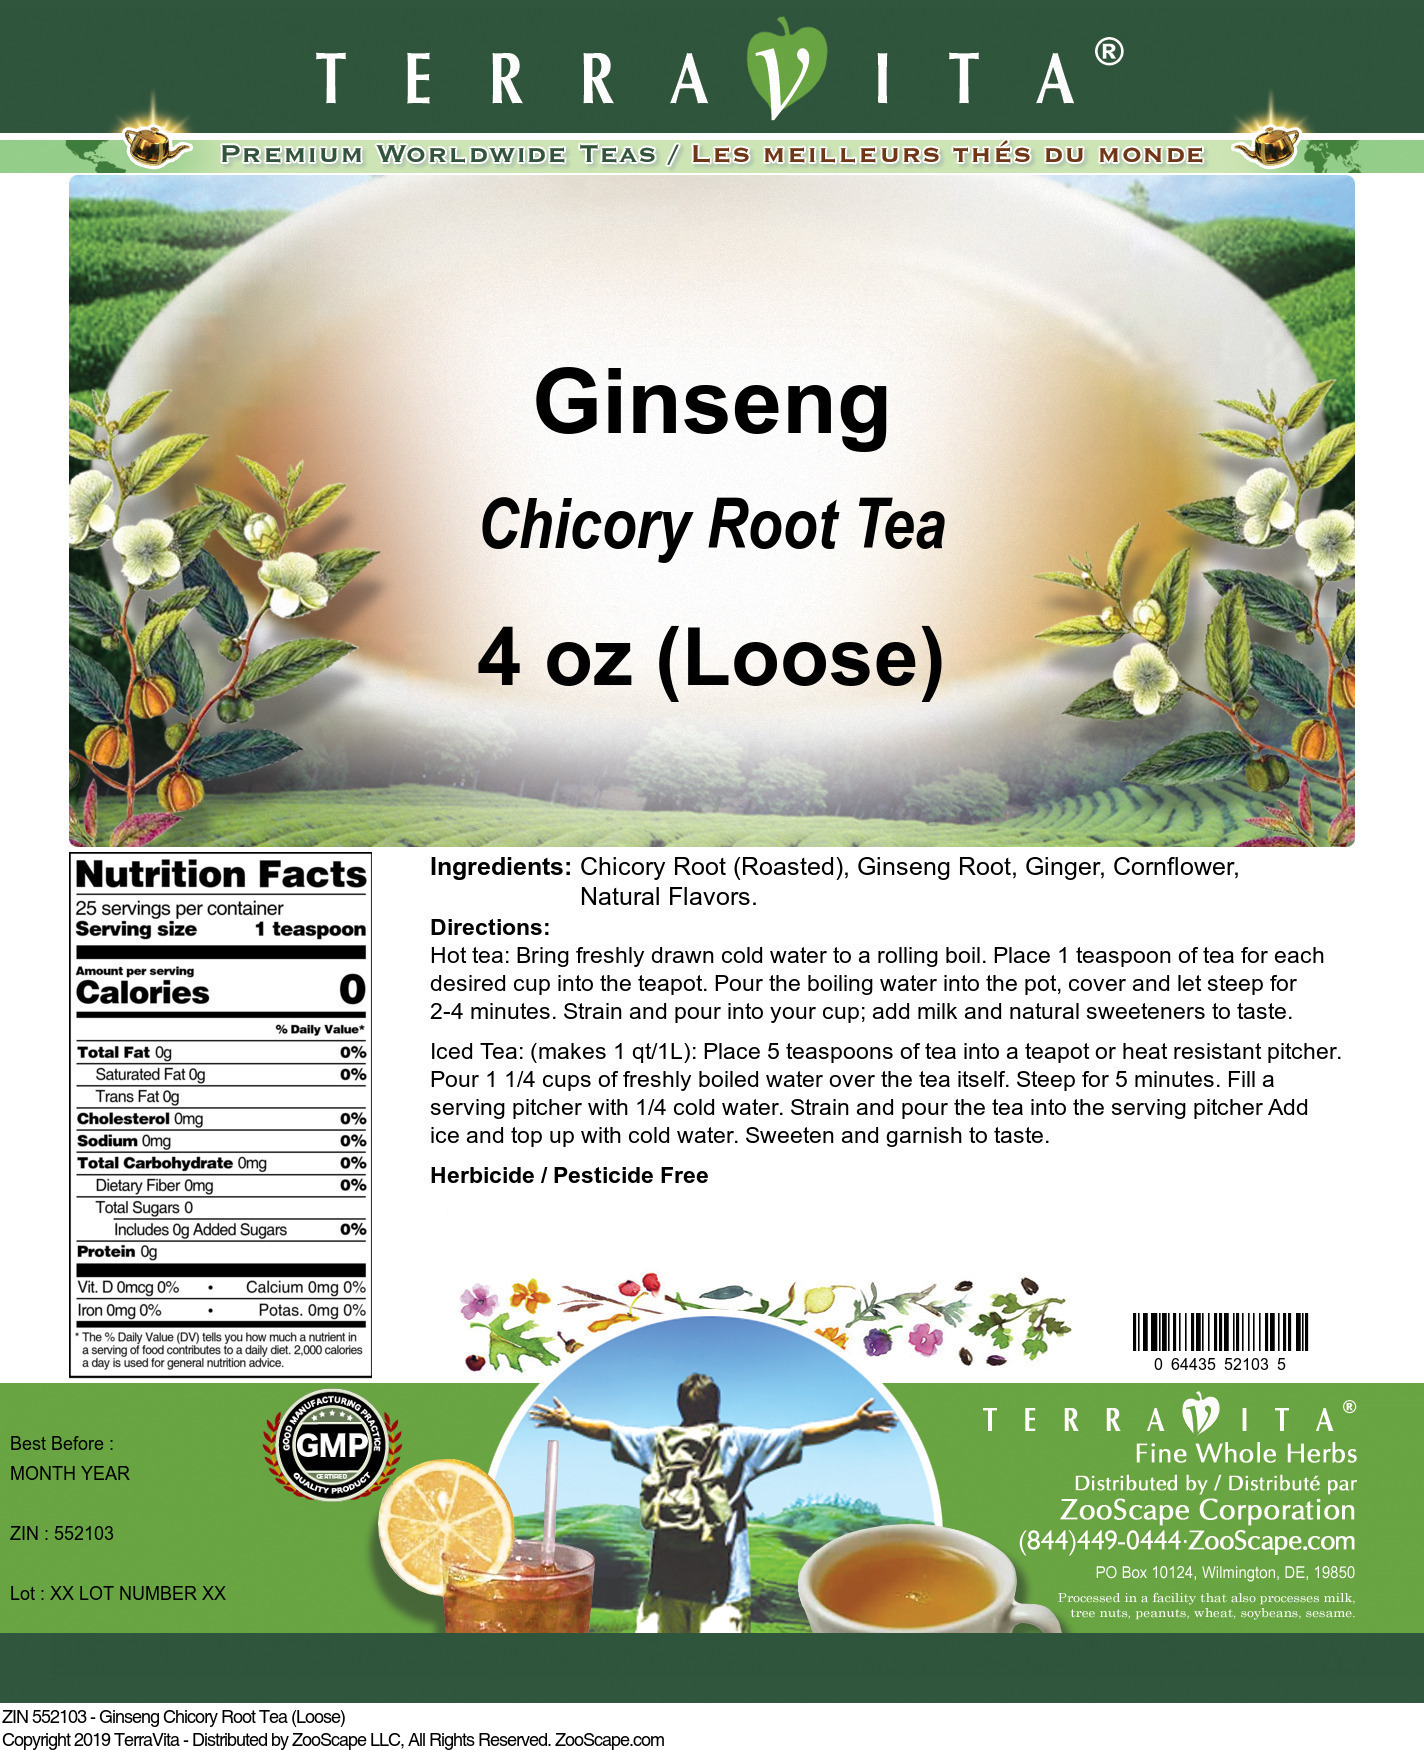 Ginseng Chicory Root Tea (Loose)